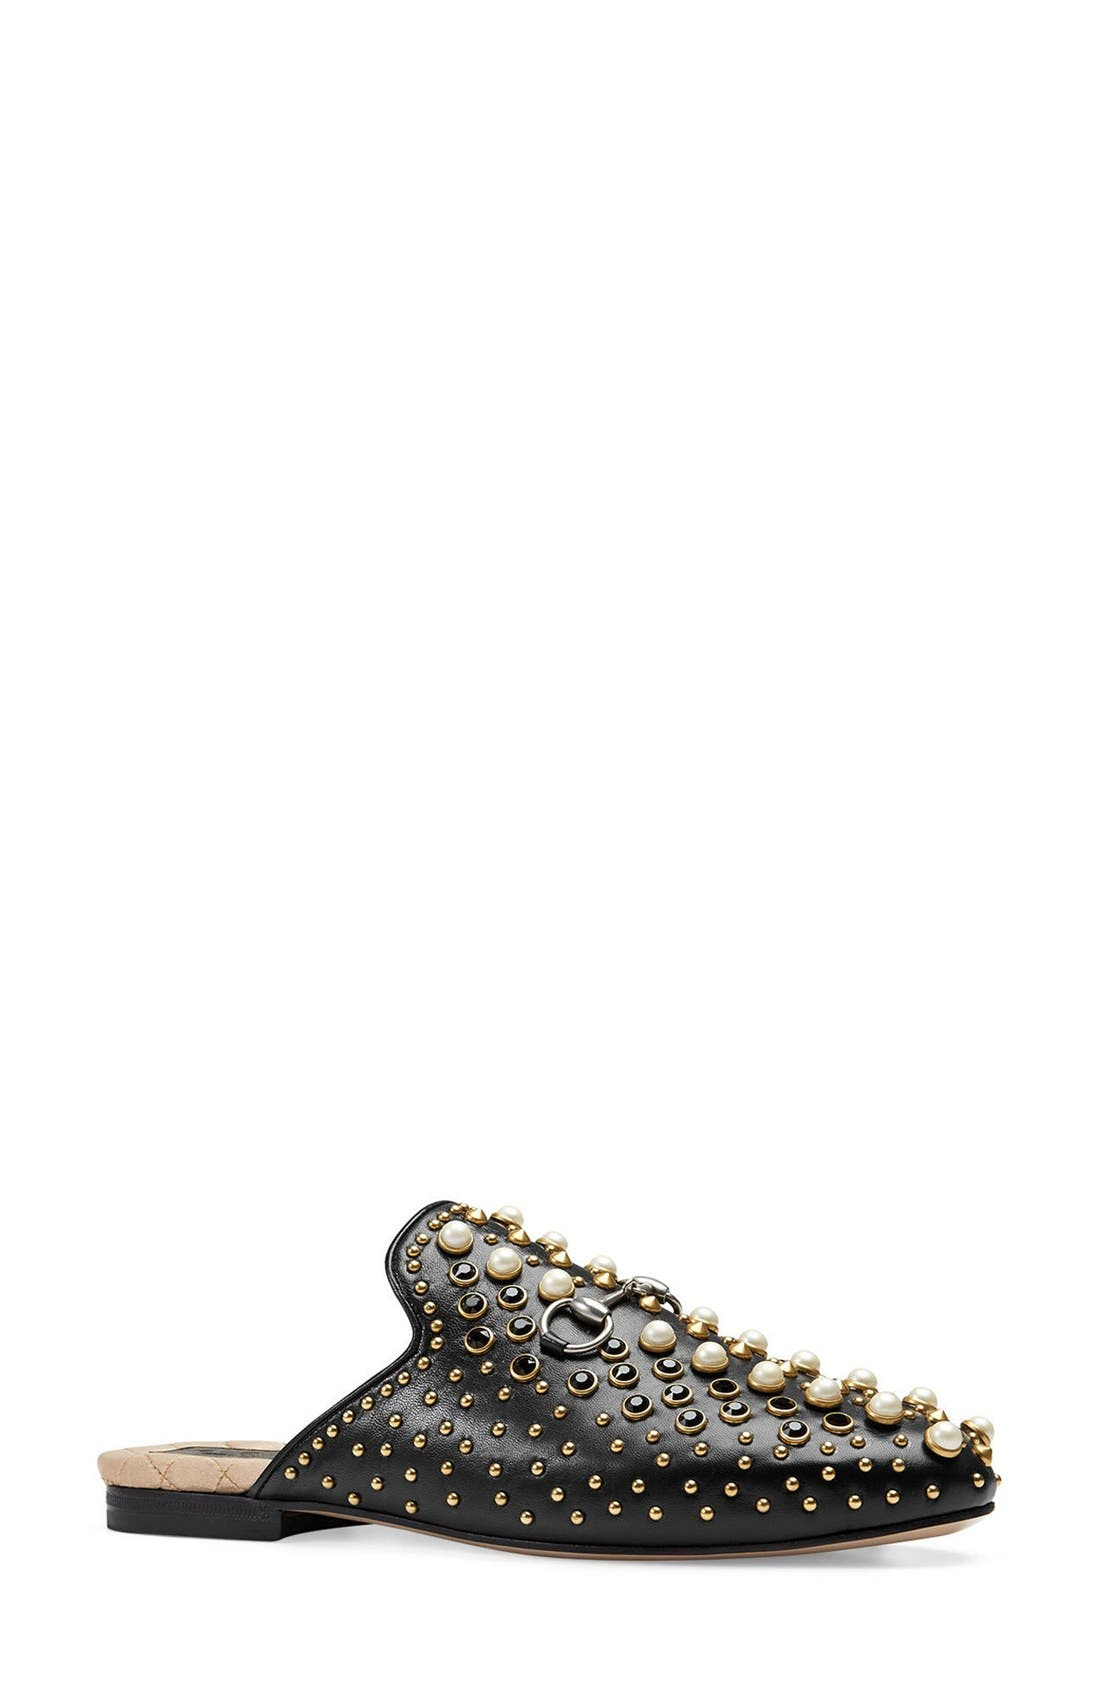 GUCCI Princetown Studded Loafer Mule